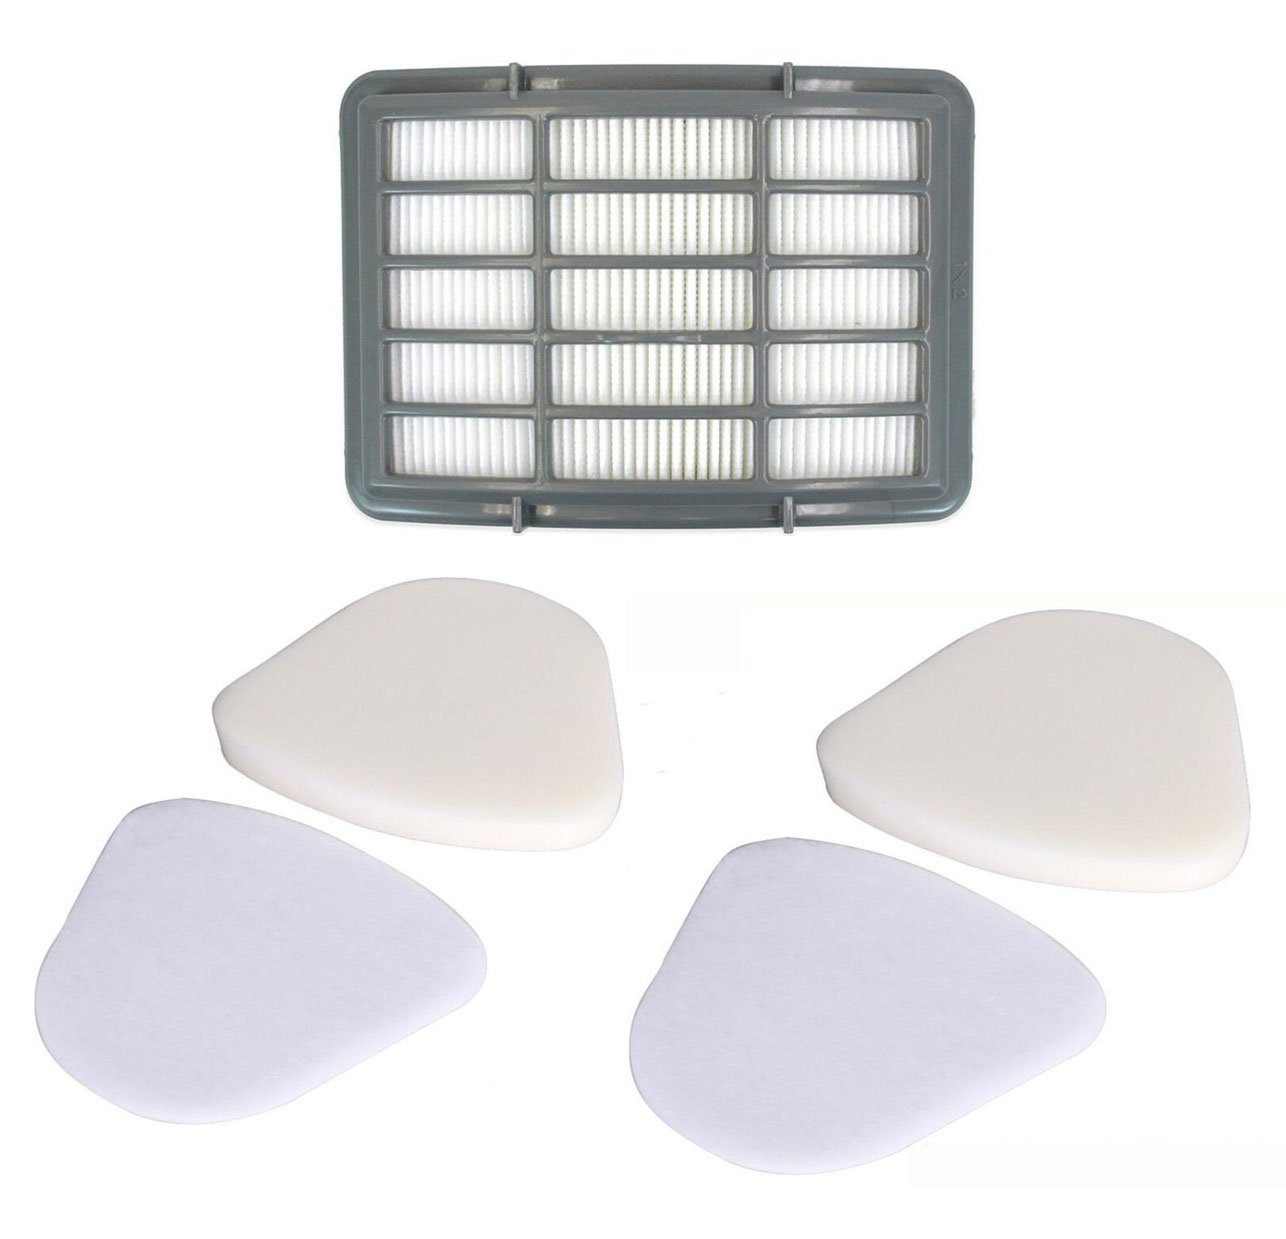 Foam and Felt Filter for Shark Navigator Lift-Away NV352 Pro NV356E NV350 Replacement Filter Set for NV370 NV391 Deluxe UV440 Washable & Reusable Resplace Part# XFF350